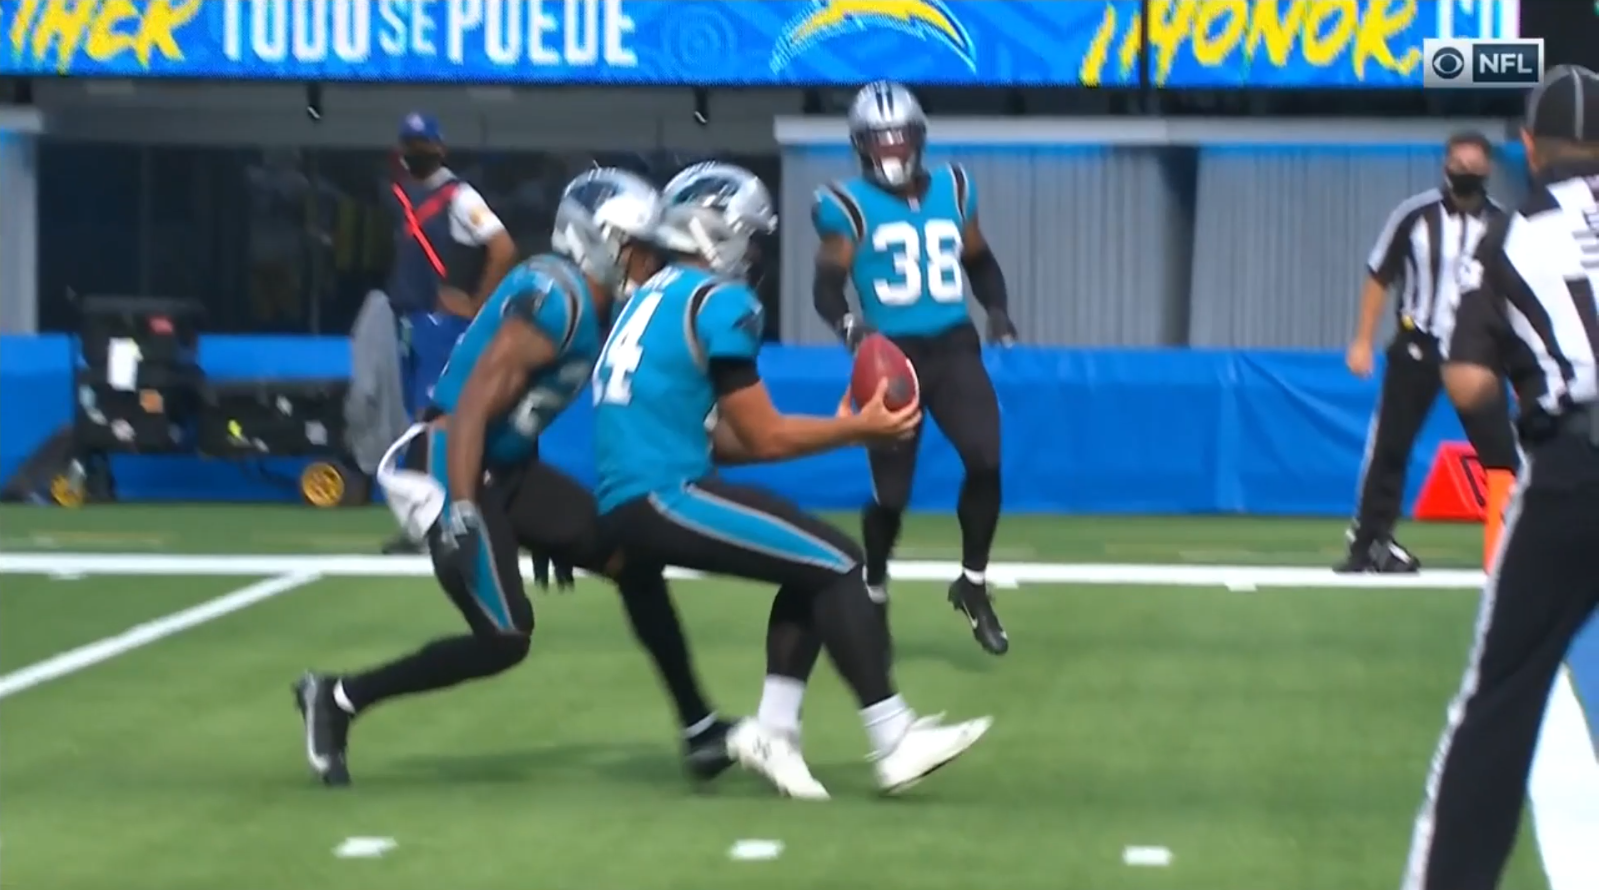 J. J. Jansen downs a punt for the Carolina Panthers near the end zone